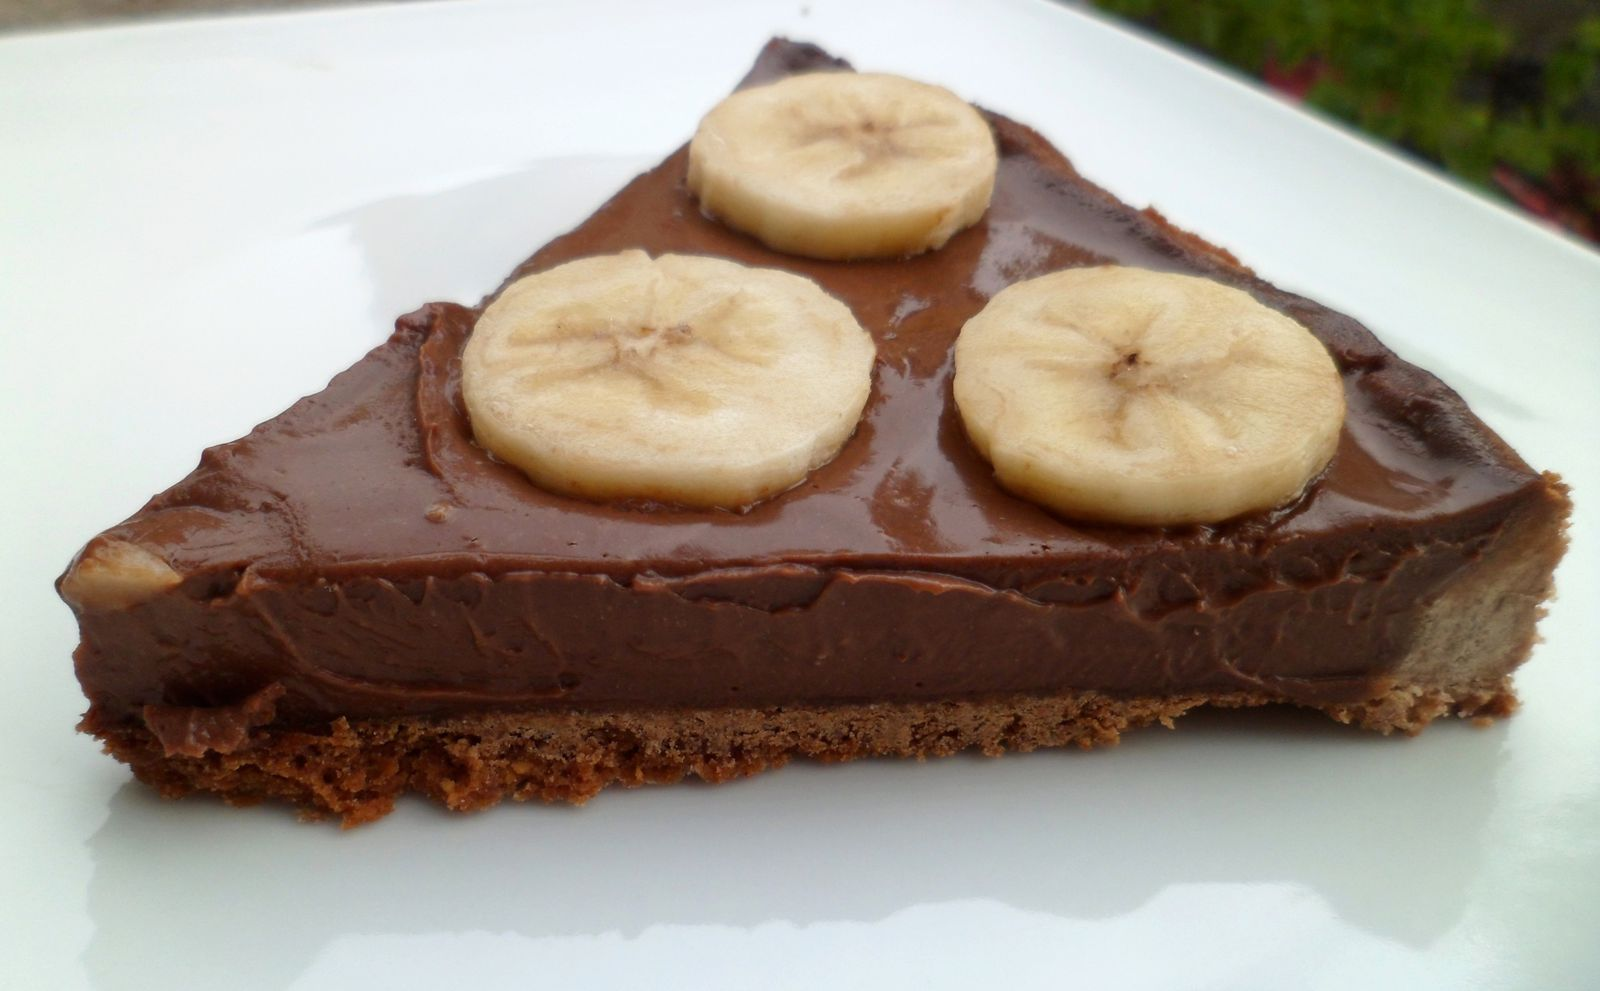 tarte chocolat banane fourchette et mascara blog de cuisine en auvergne. Black Bedroom Furniture Sets. Home Design Ideas